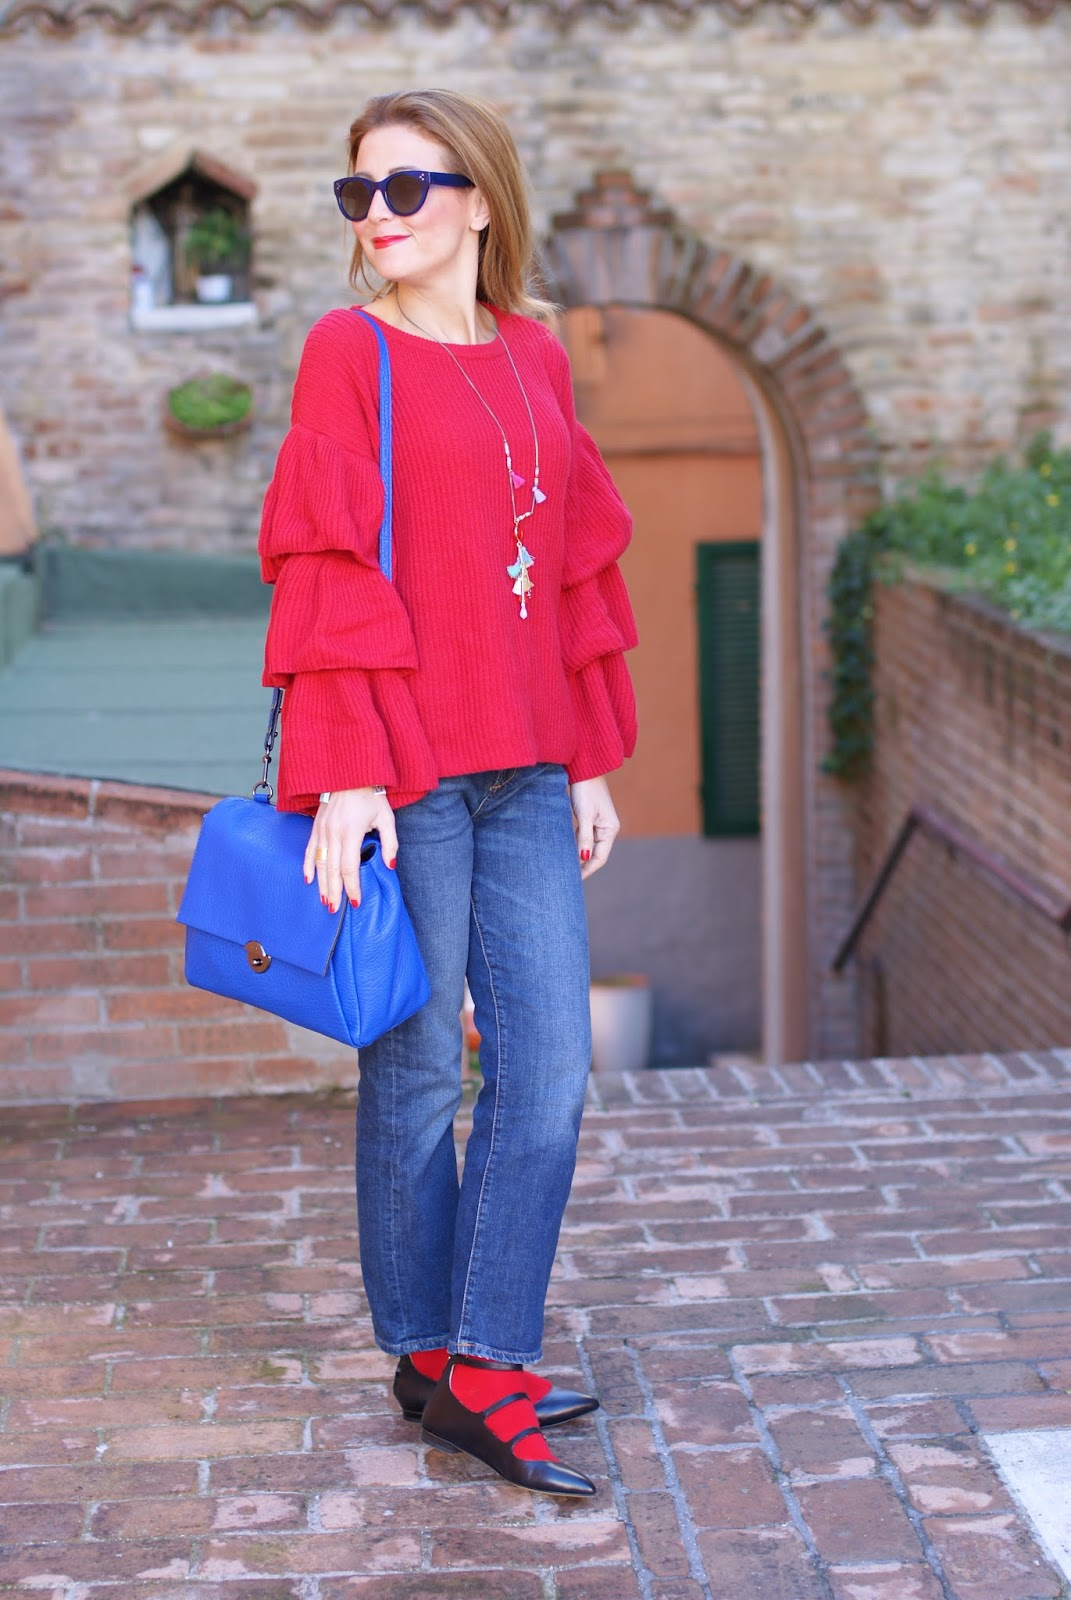 Ruffle sleeves top, Sergio Amaranti shoes and Milly Wythe satchel bag on Fashion and Cookies fashion blog, fashion blogger style